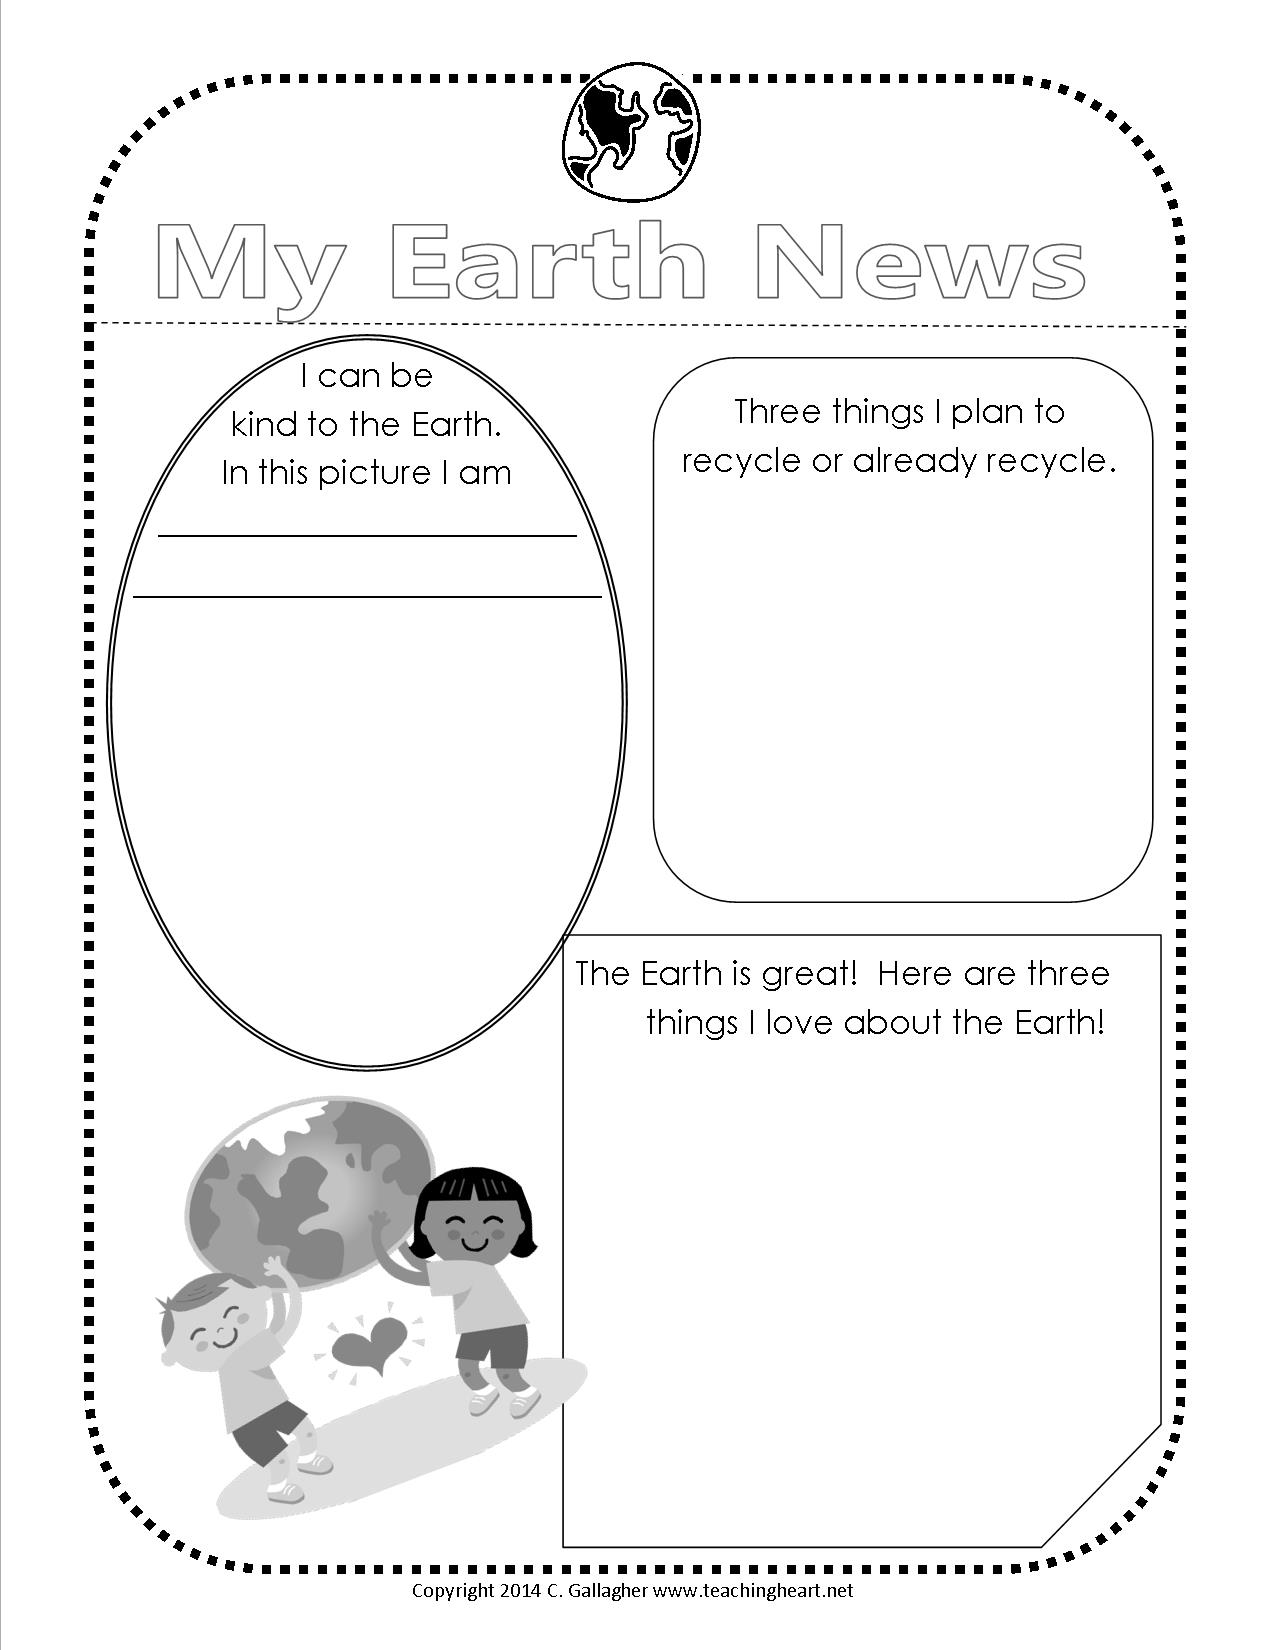 earth day 2014 free printable teaching heart blog. Black Bedroom Furniture Sets. Home Design Ideas